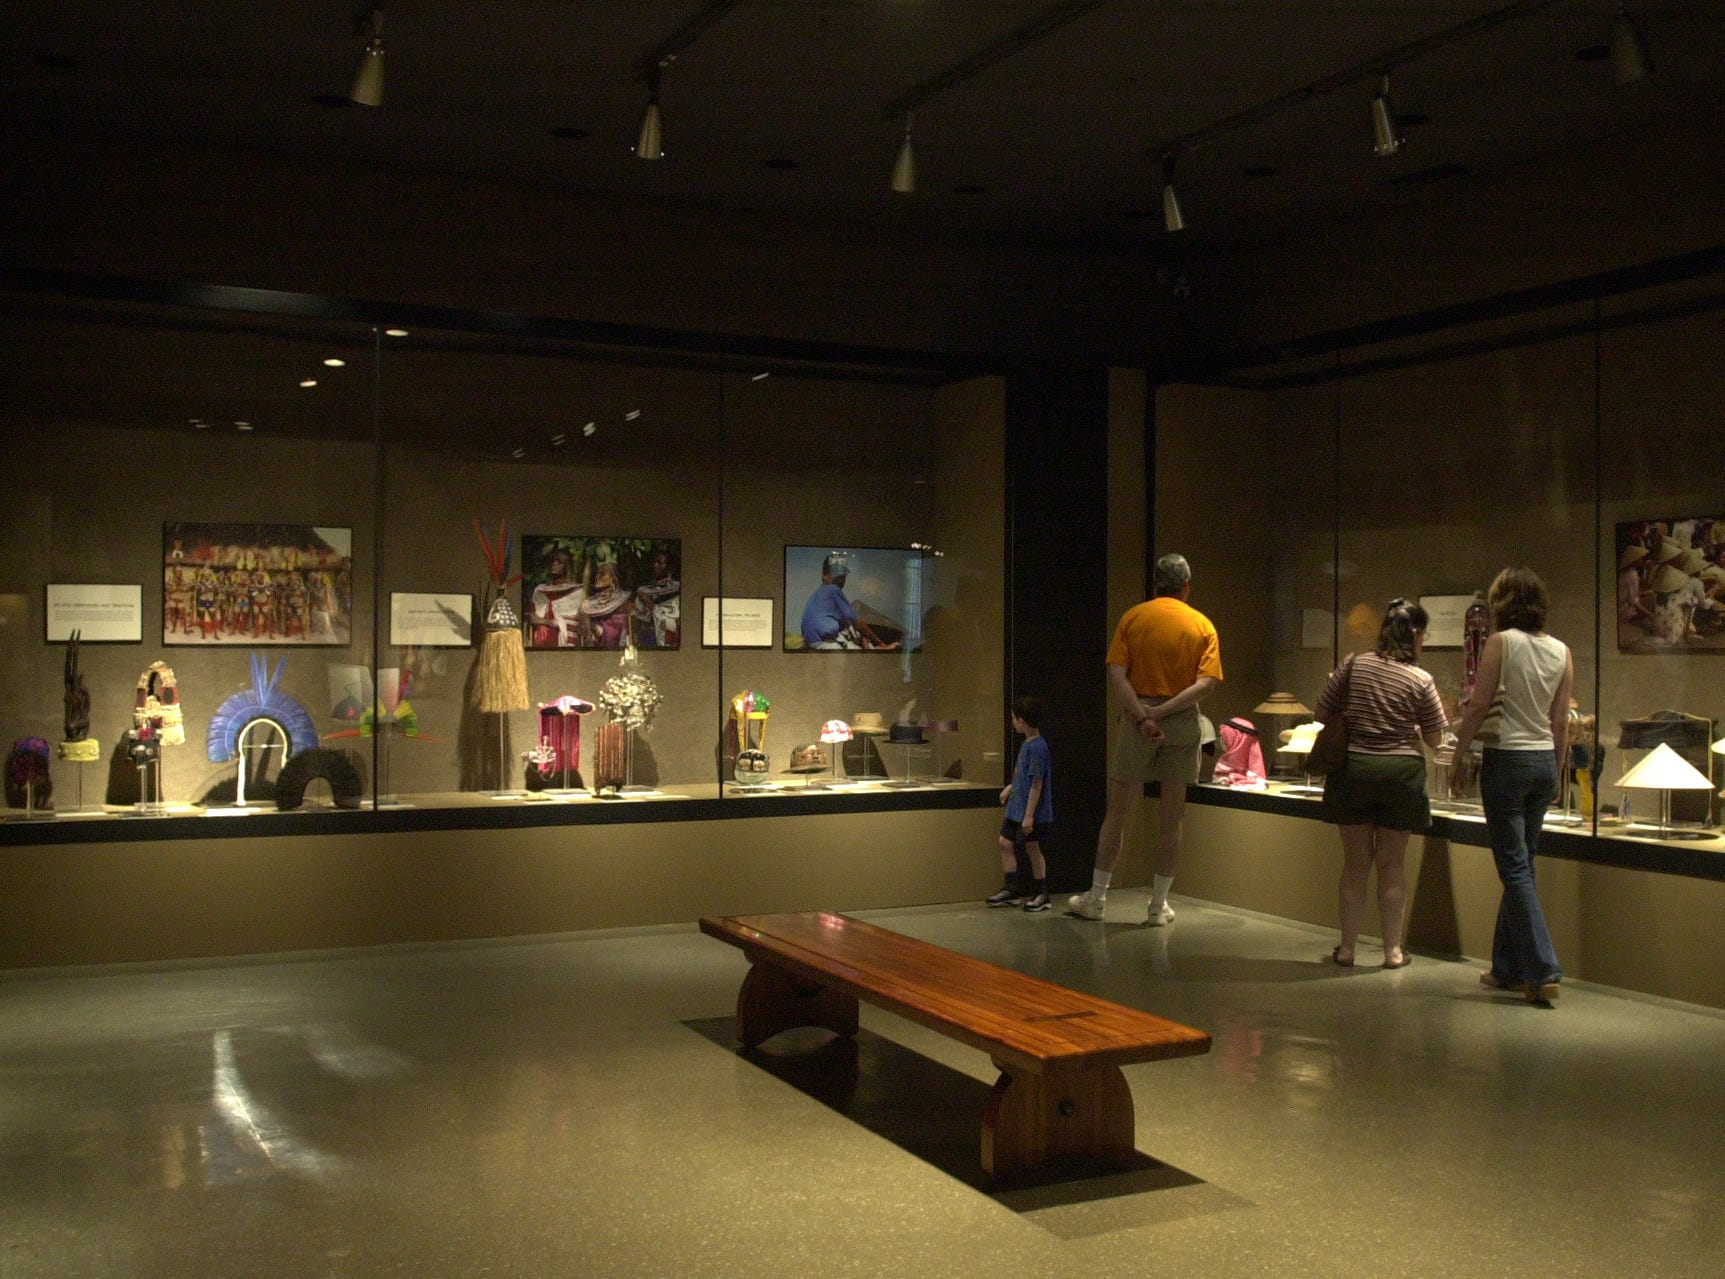 Hats and Headdresses exhibit at the McClung Museum Sunday. There are over 100 items on display that range in variety from all over the world. 2003